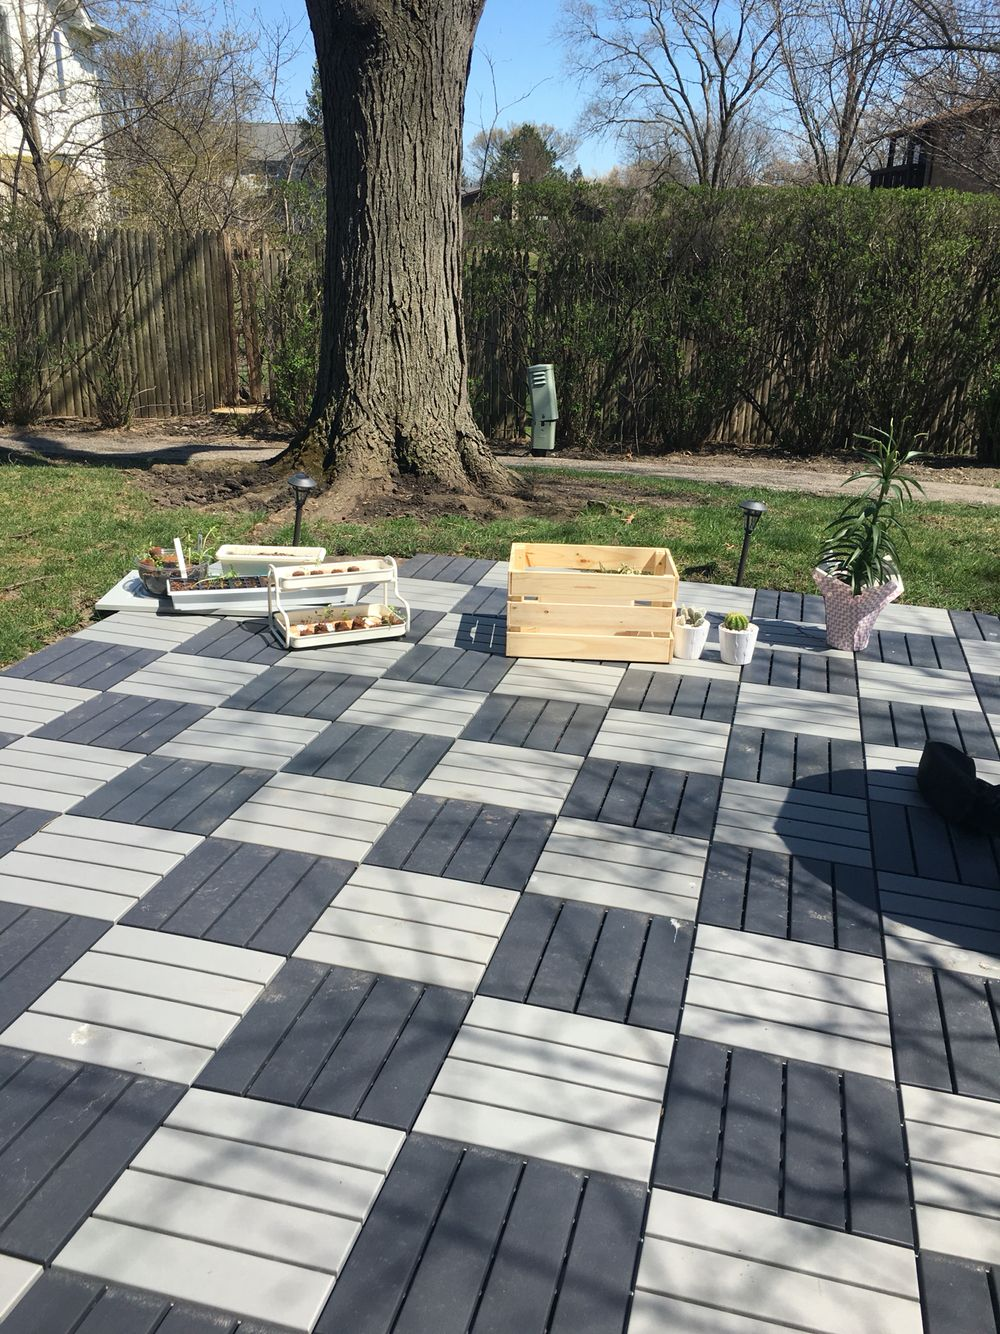 Love Ikea Outdoor Tiles Easy To Install And Totally Upgrade My